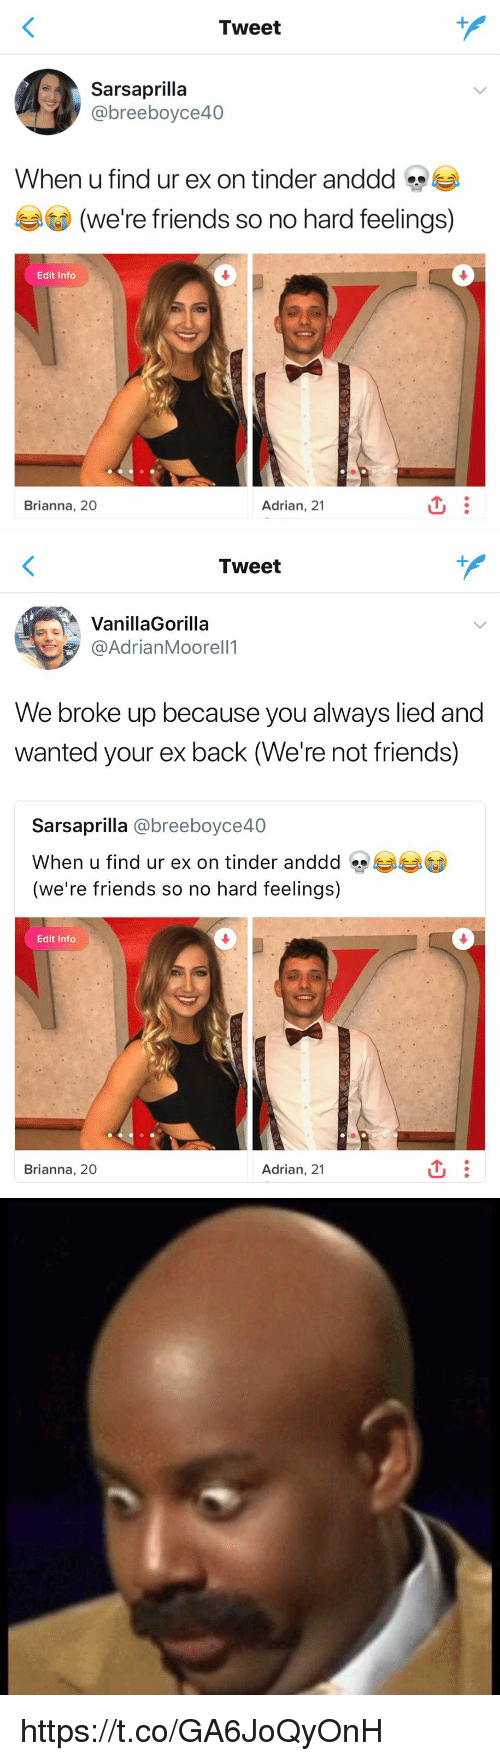 Friends, Tinder, and Girl Memes: Tweet  @breeboyce40  When u find ur ex on tinder anddd s  (we're friends so no hard feelings)  0  Edit Info  Brianna, 20  Adrian, 21   Tweet  VanillaGorilla  @AdrianMoorell1  We broke up because you always lied and  wanted your ex back (We're not friends)  Sarsaprilla @breeboyce40  When u find ur ex on tinder anddd  (we're friends so no hard feelings)  Edit Info  Brianna, 20  Adrian, 21 https://t.co/GA6JoQyOnH